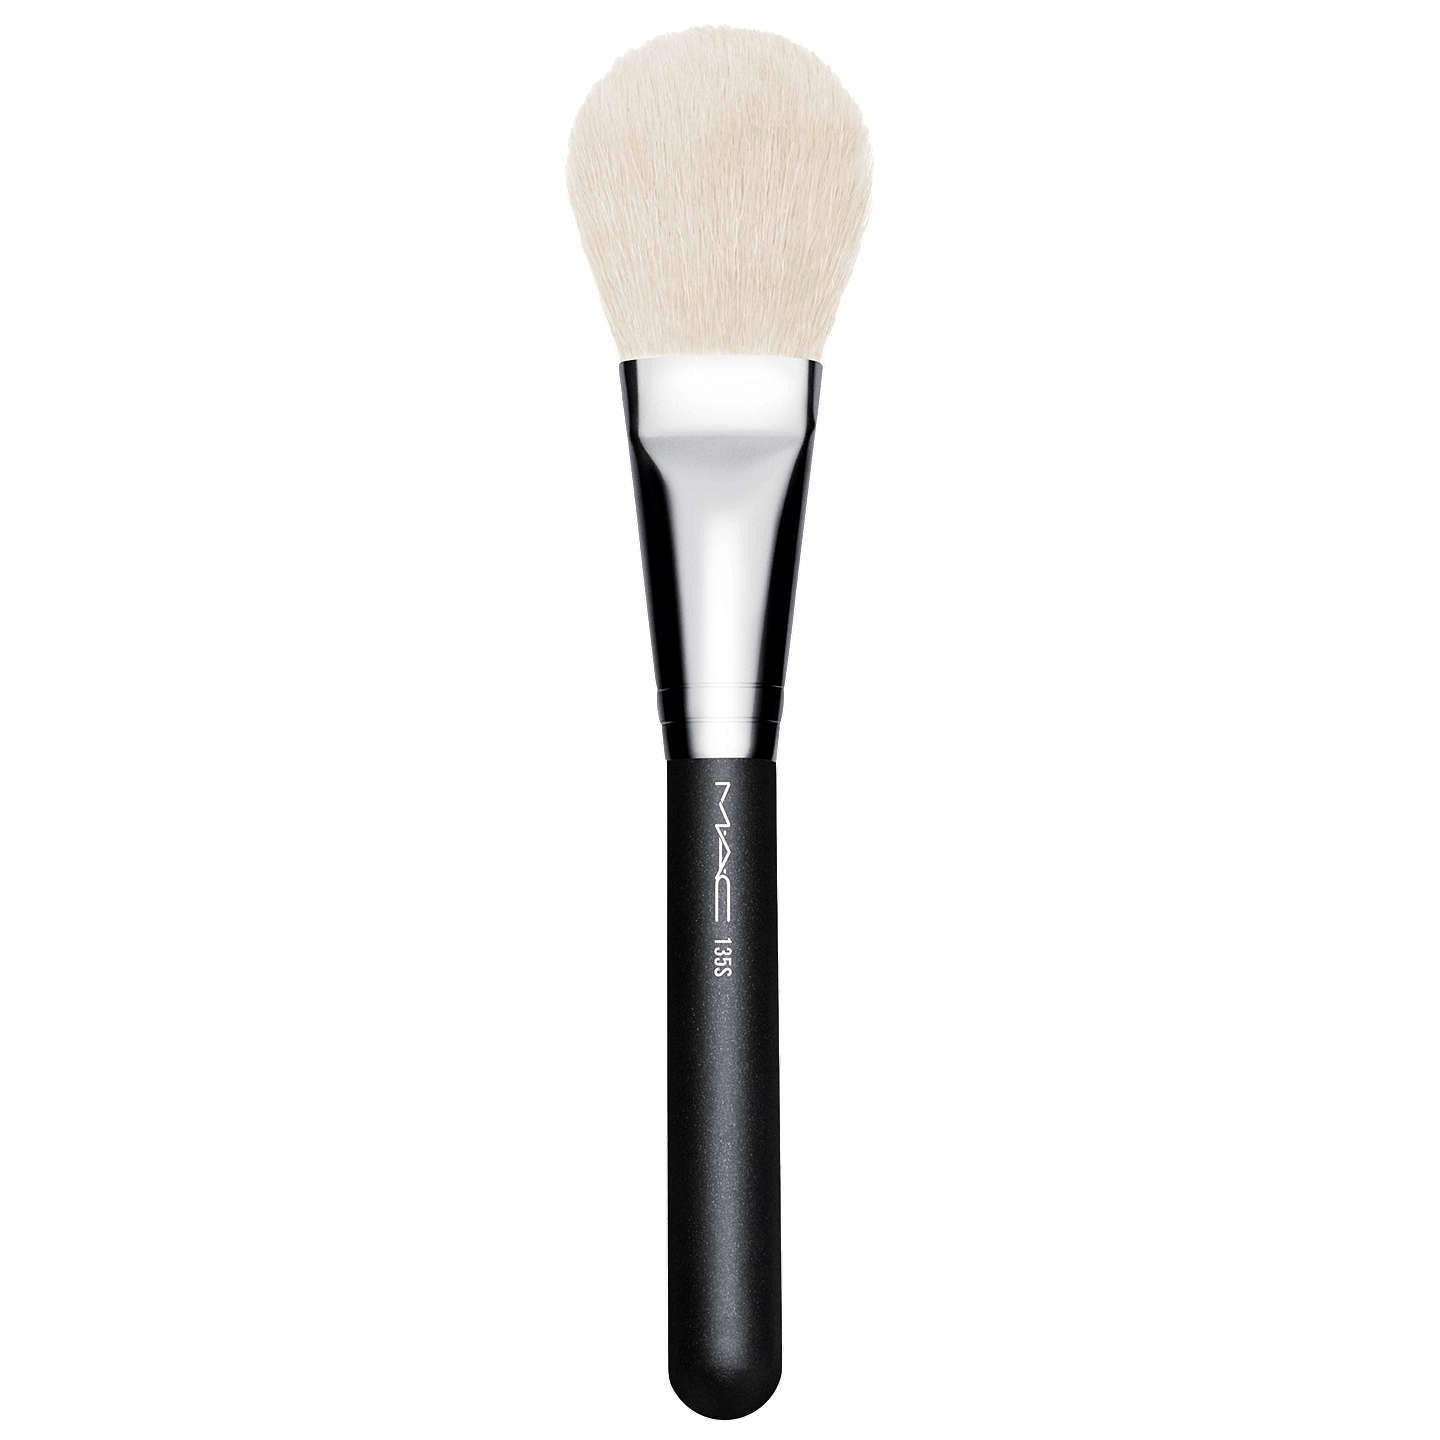 BuyMAC 135S Large Flat Powder Brush Online at johnlewis.com